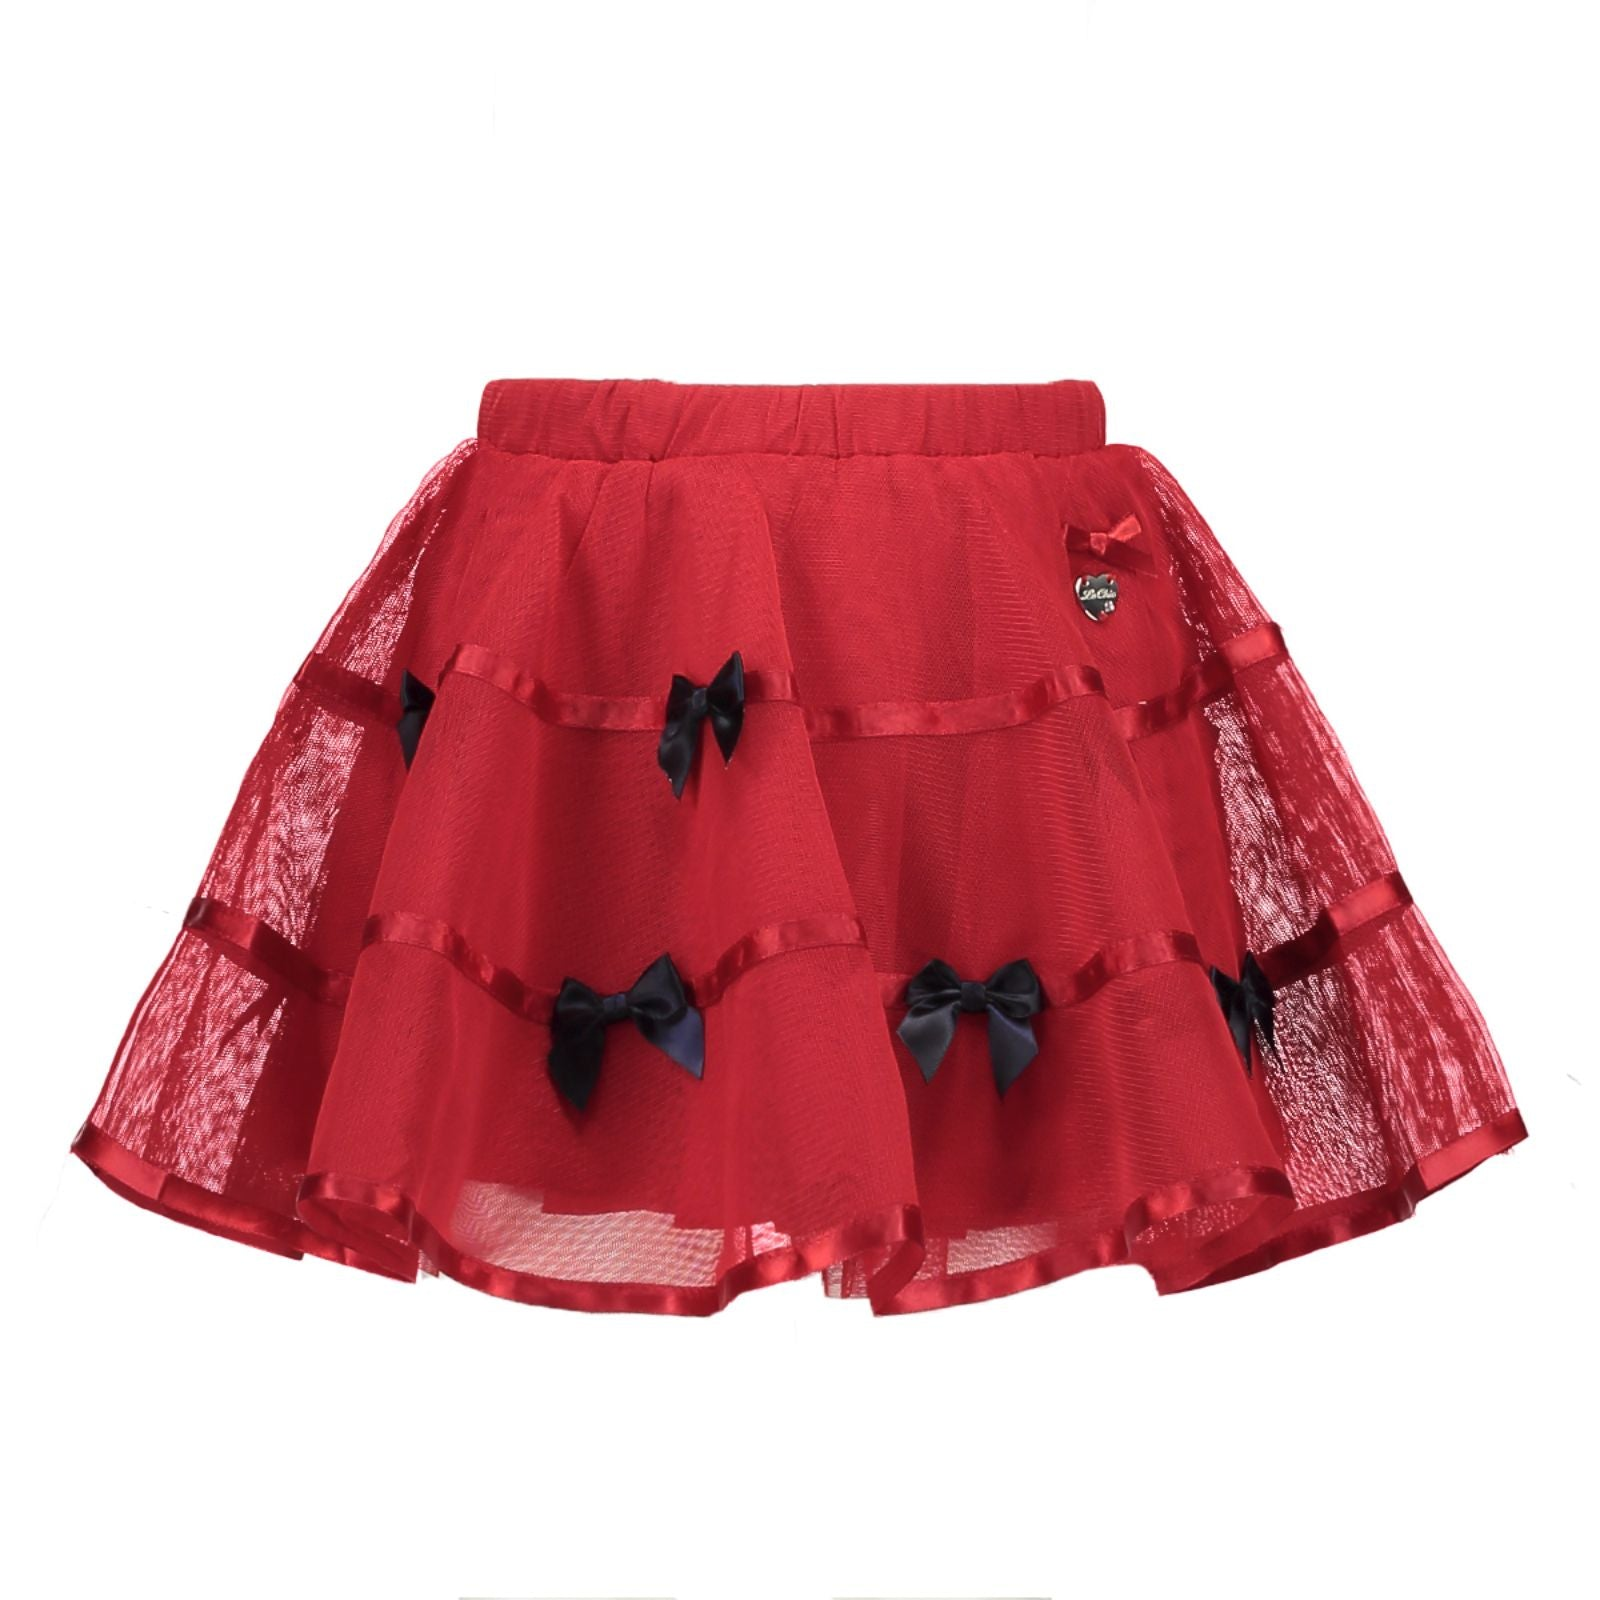 LE CHIC BOW SKIRT C709 5721 287